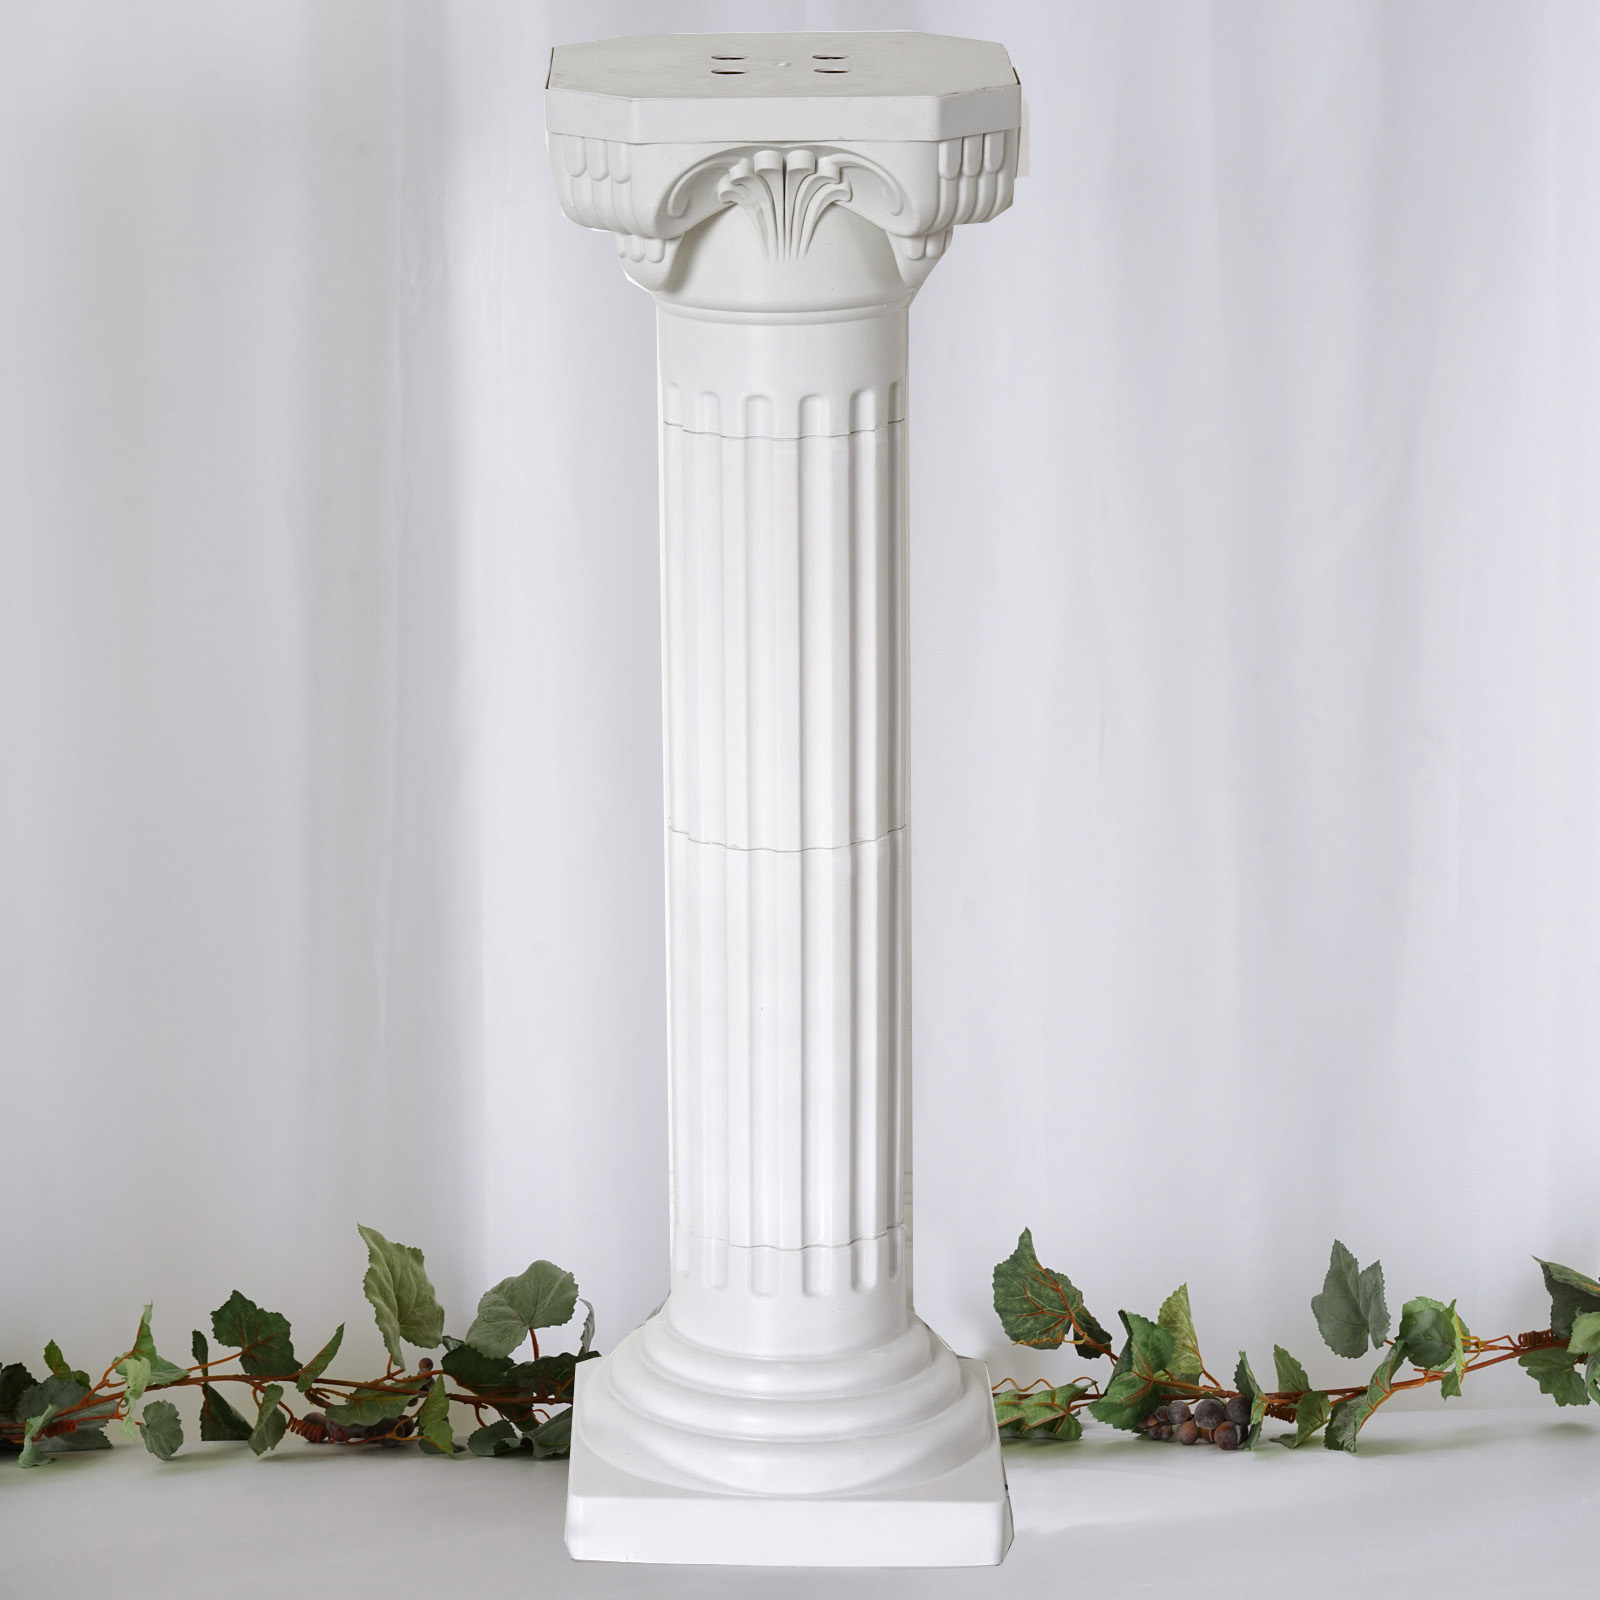 decorative columns for weddings 4 pillars set decorative columns pvc pillars 36 3452